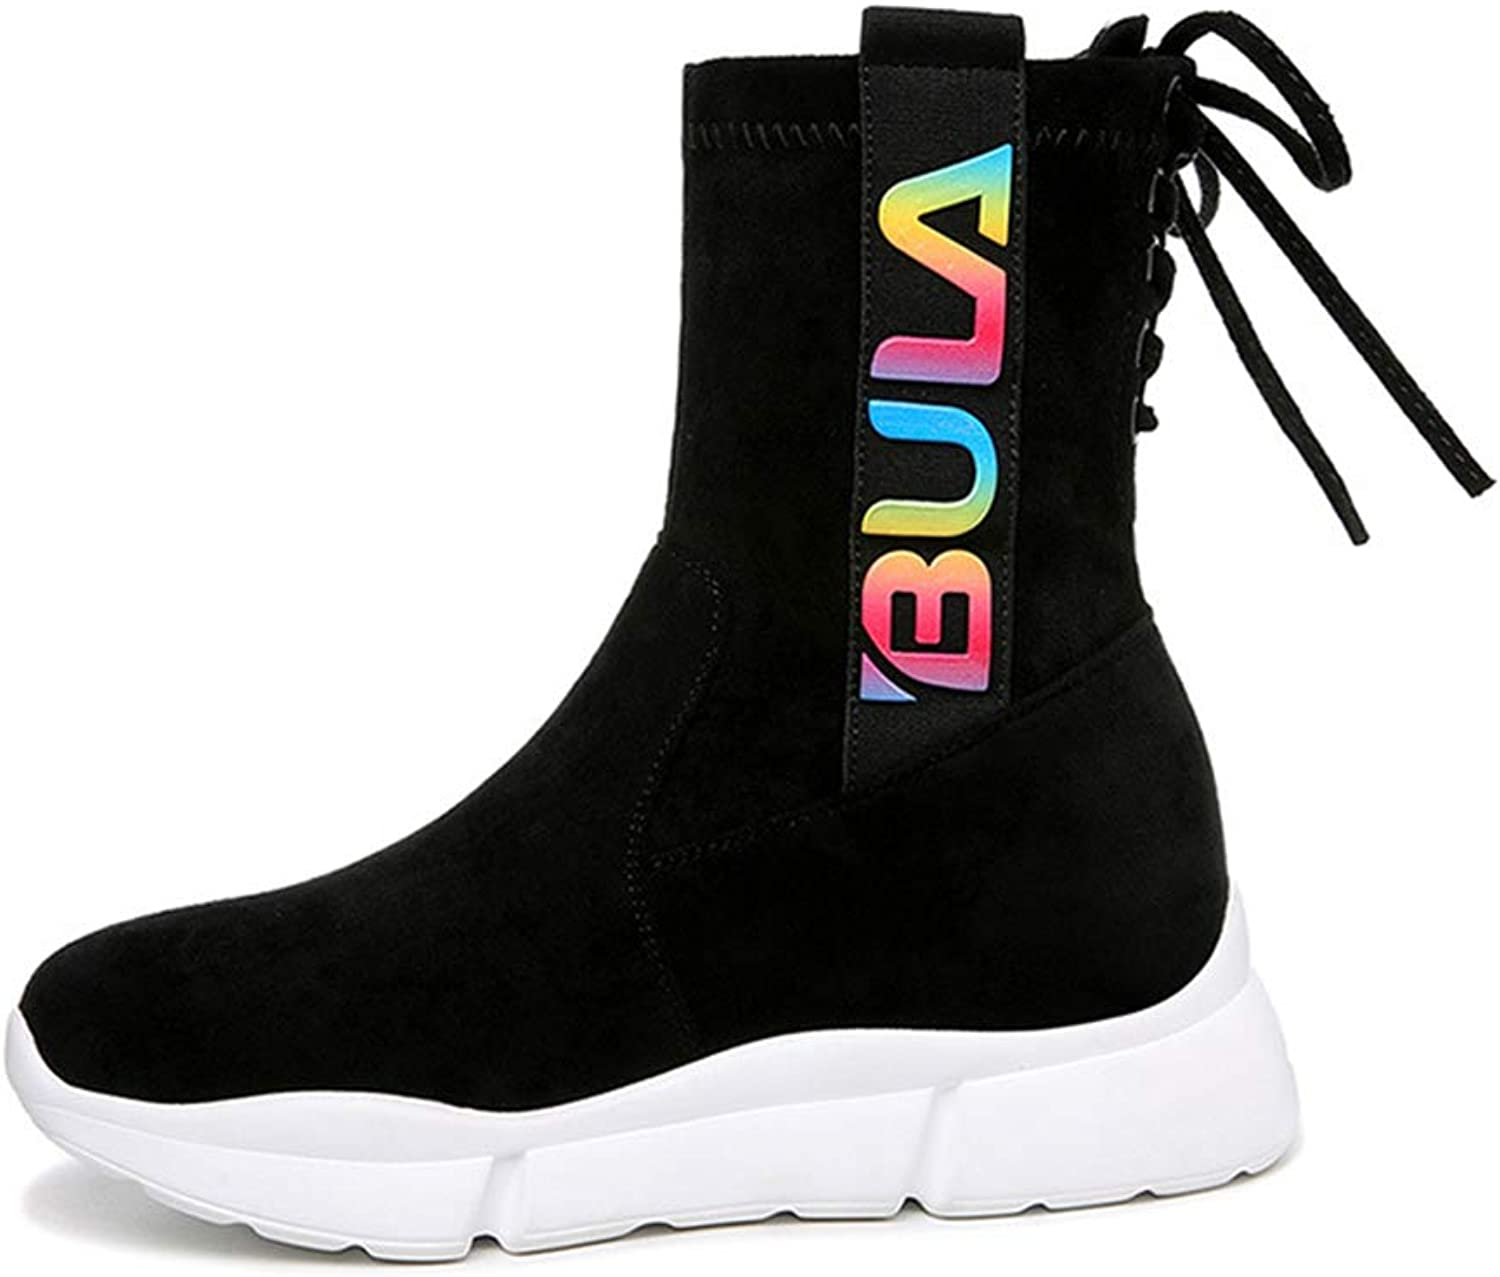 Women's shoes Microfiber Spring & Fall High-top Sneakers Stretch Socks Boots Lace Up Sports shoes Platform shoes